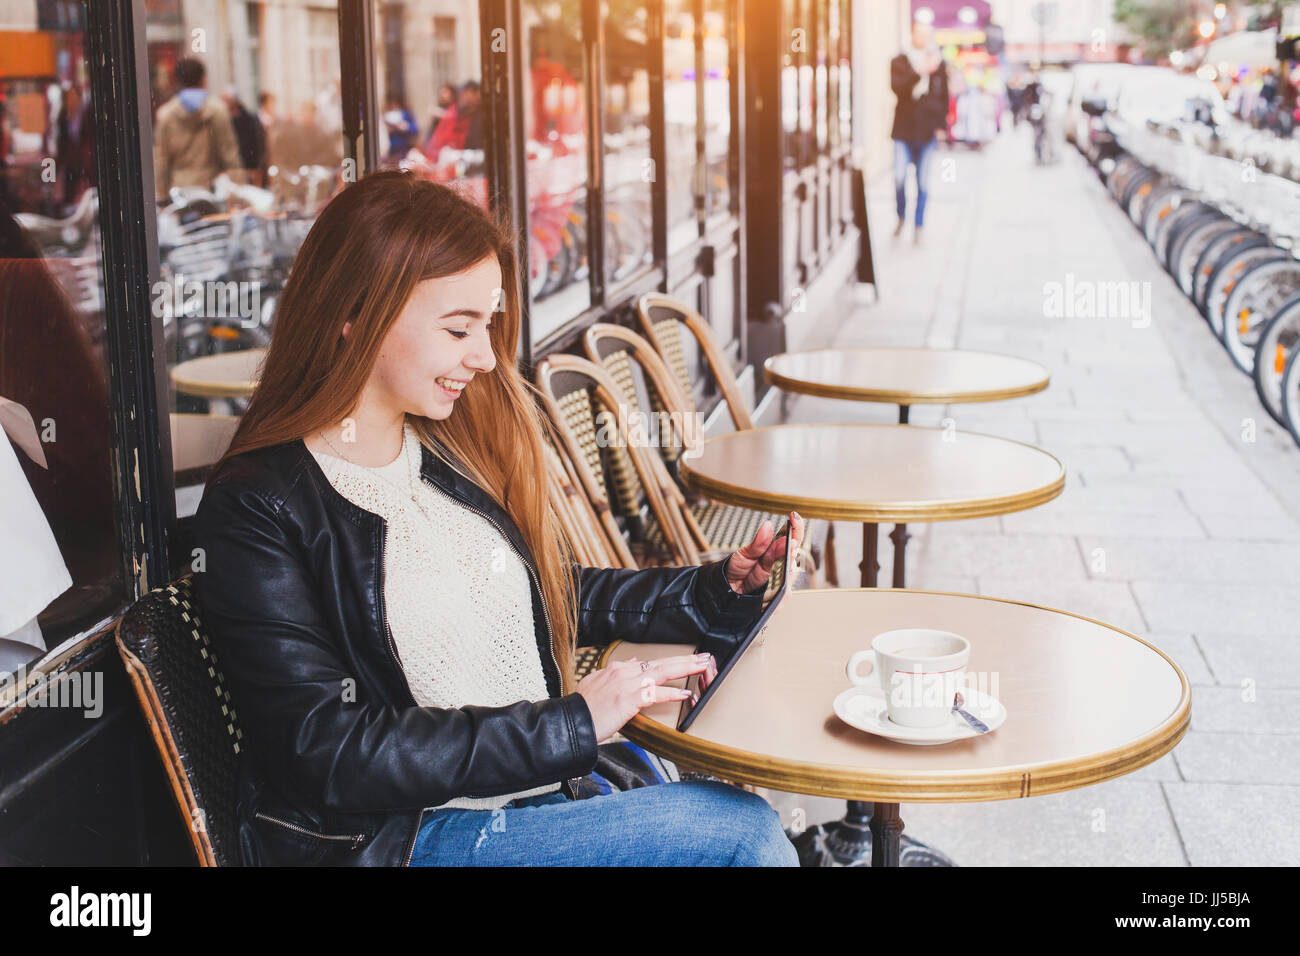 young woman using digital tablet computer in street cafe in Europe - Stock Image